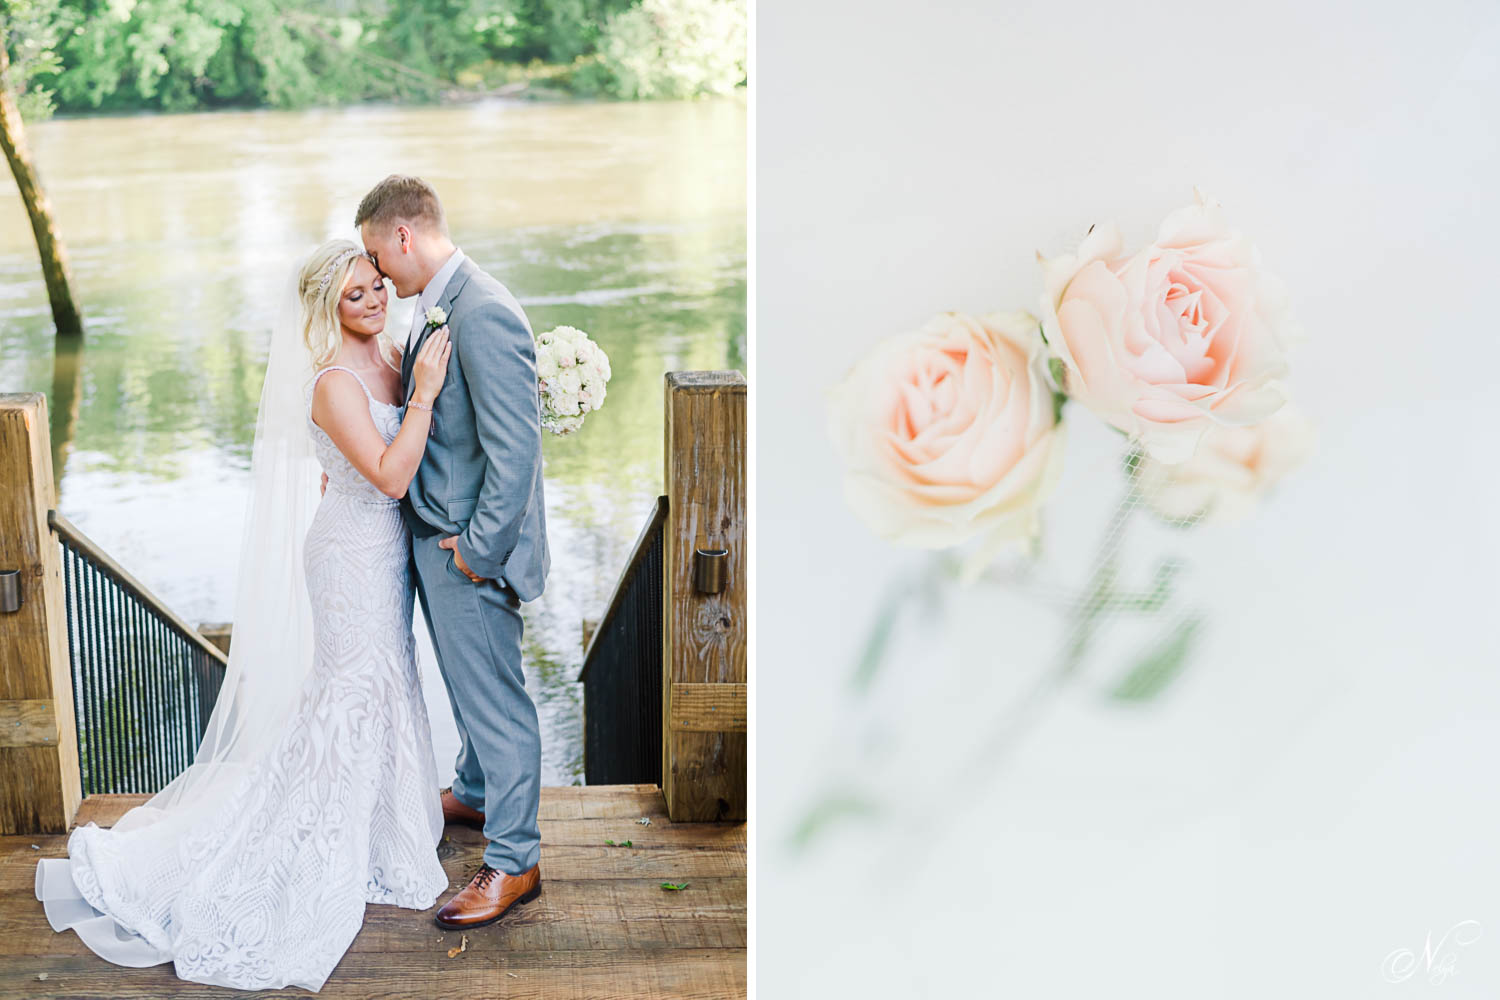 A Hiwassee River Weddings wedding